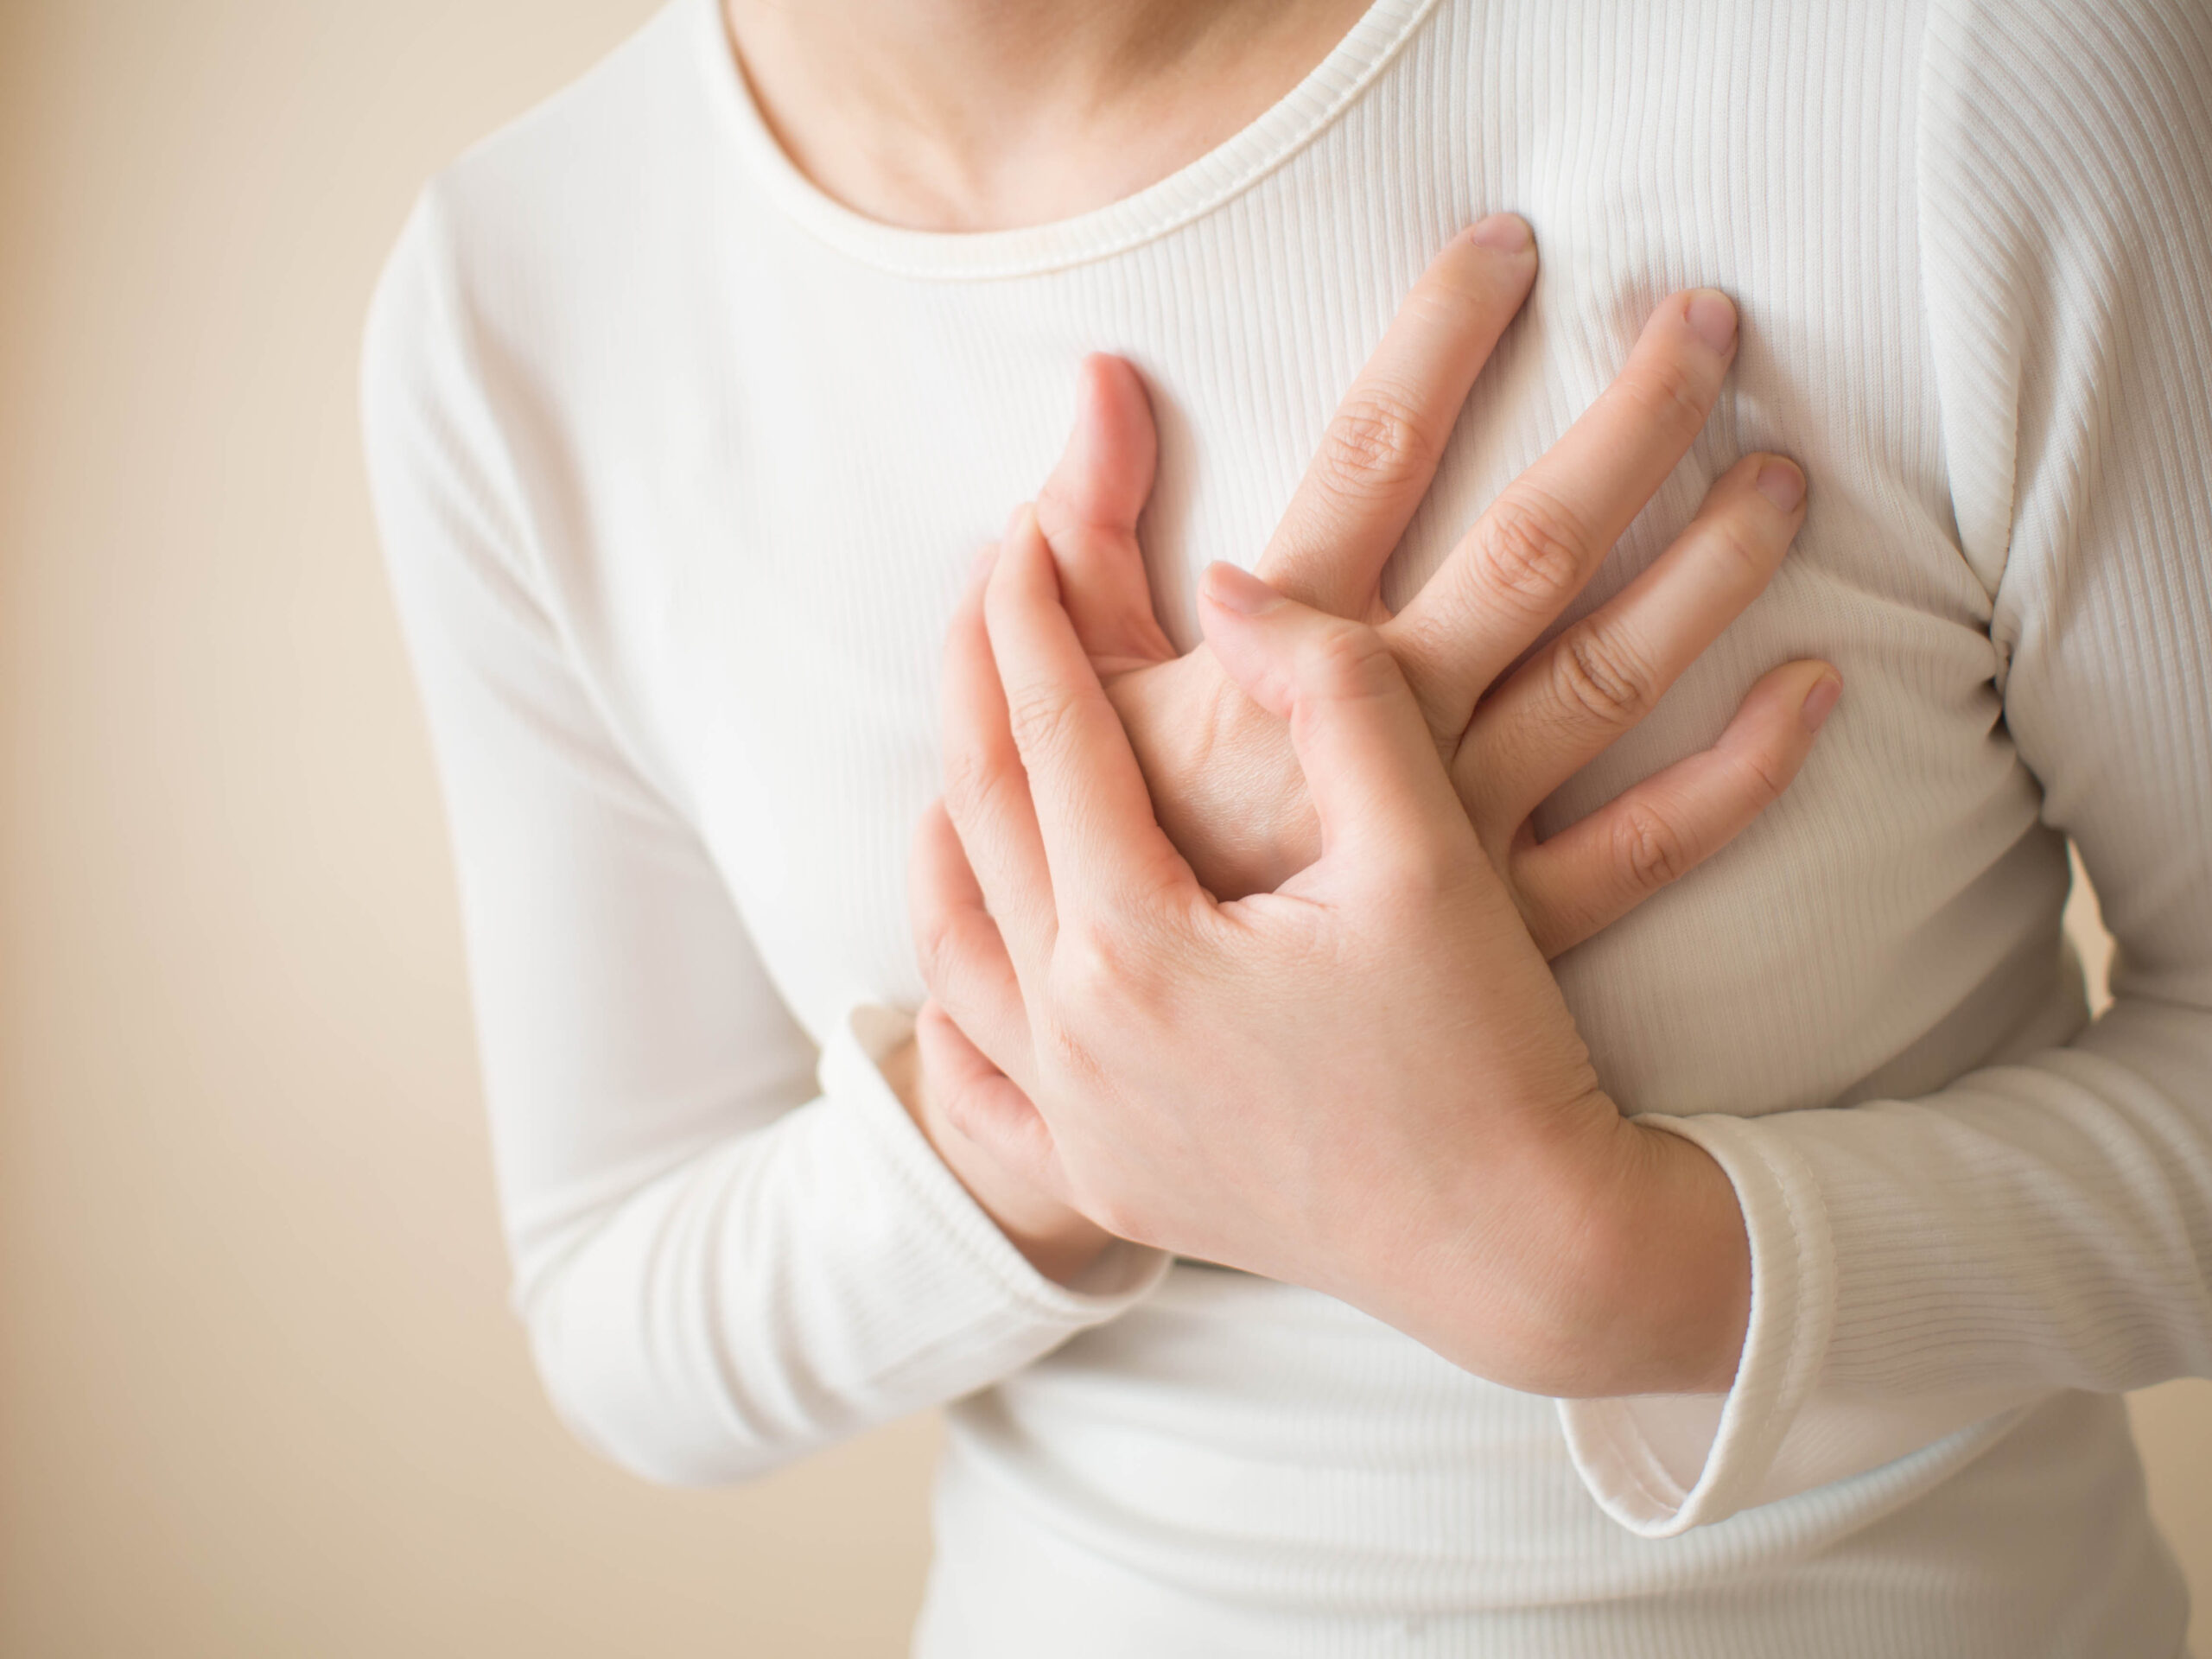 Breast and chest pain